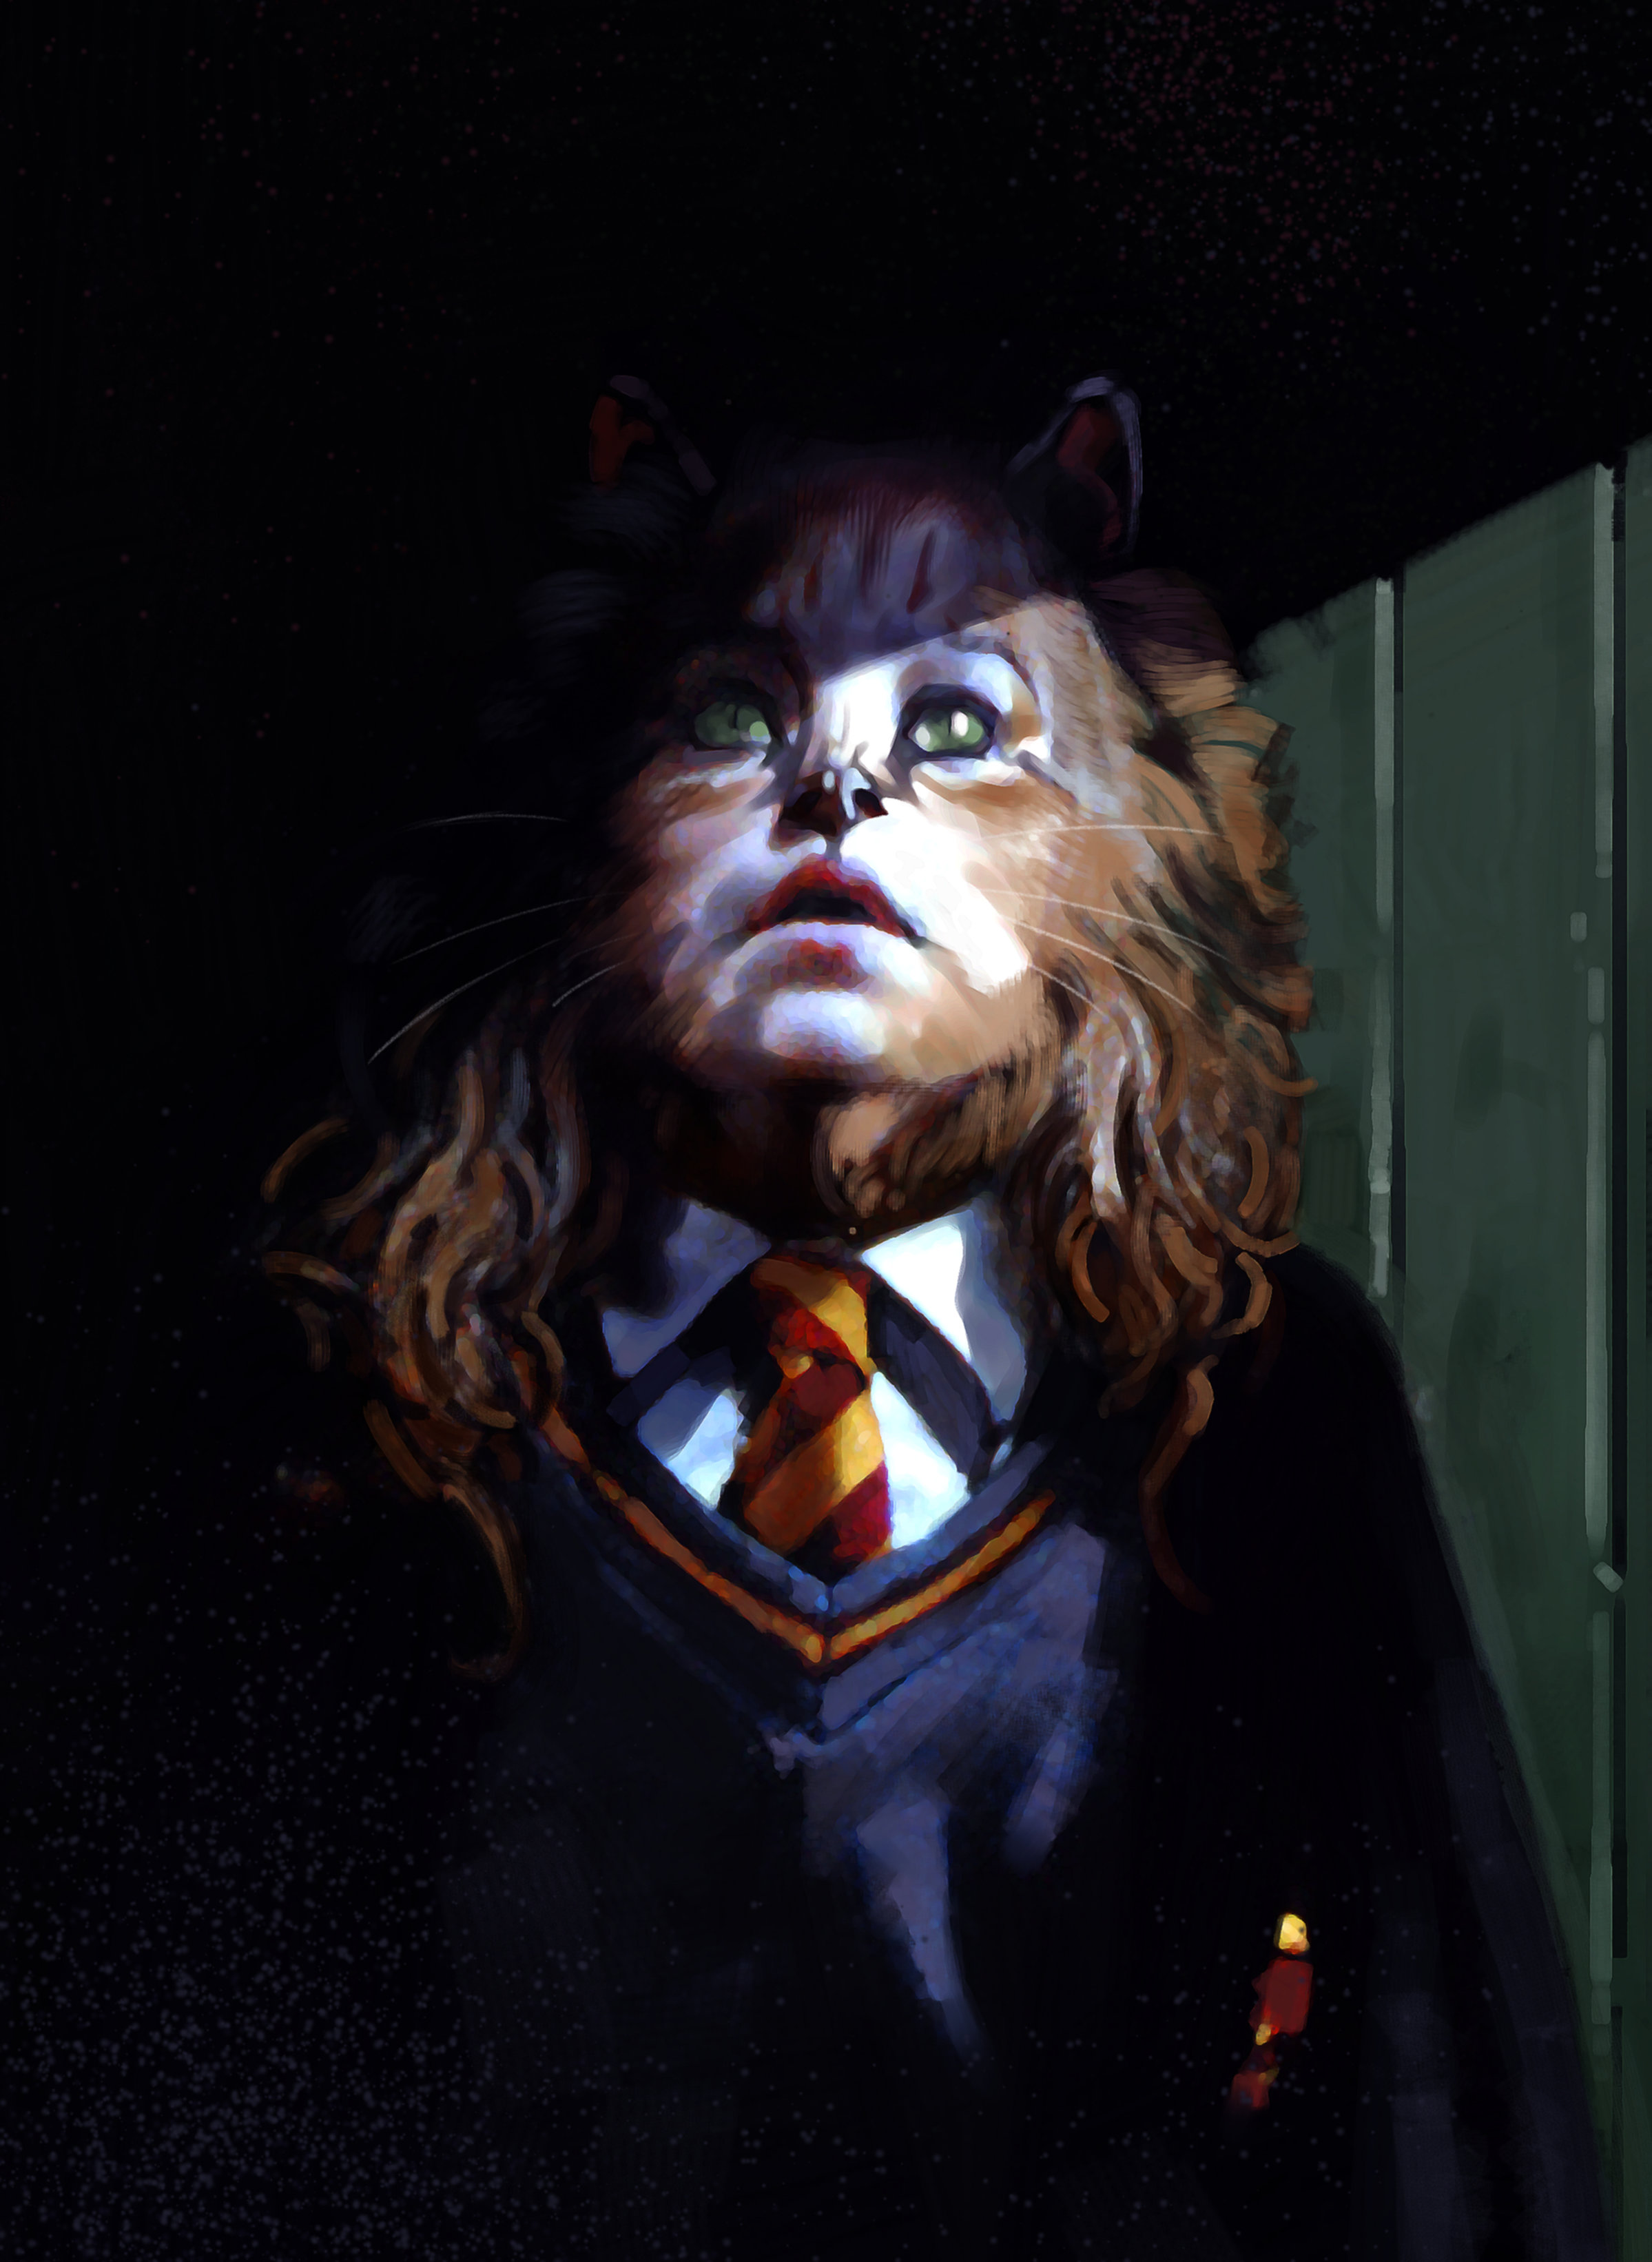 An illustration of Hermione after taking Polyjuice Potion of a cat